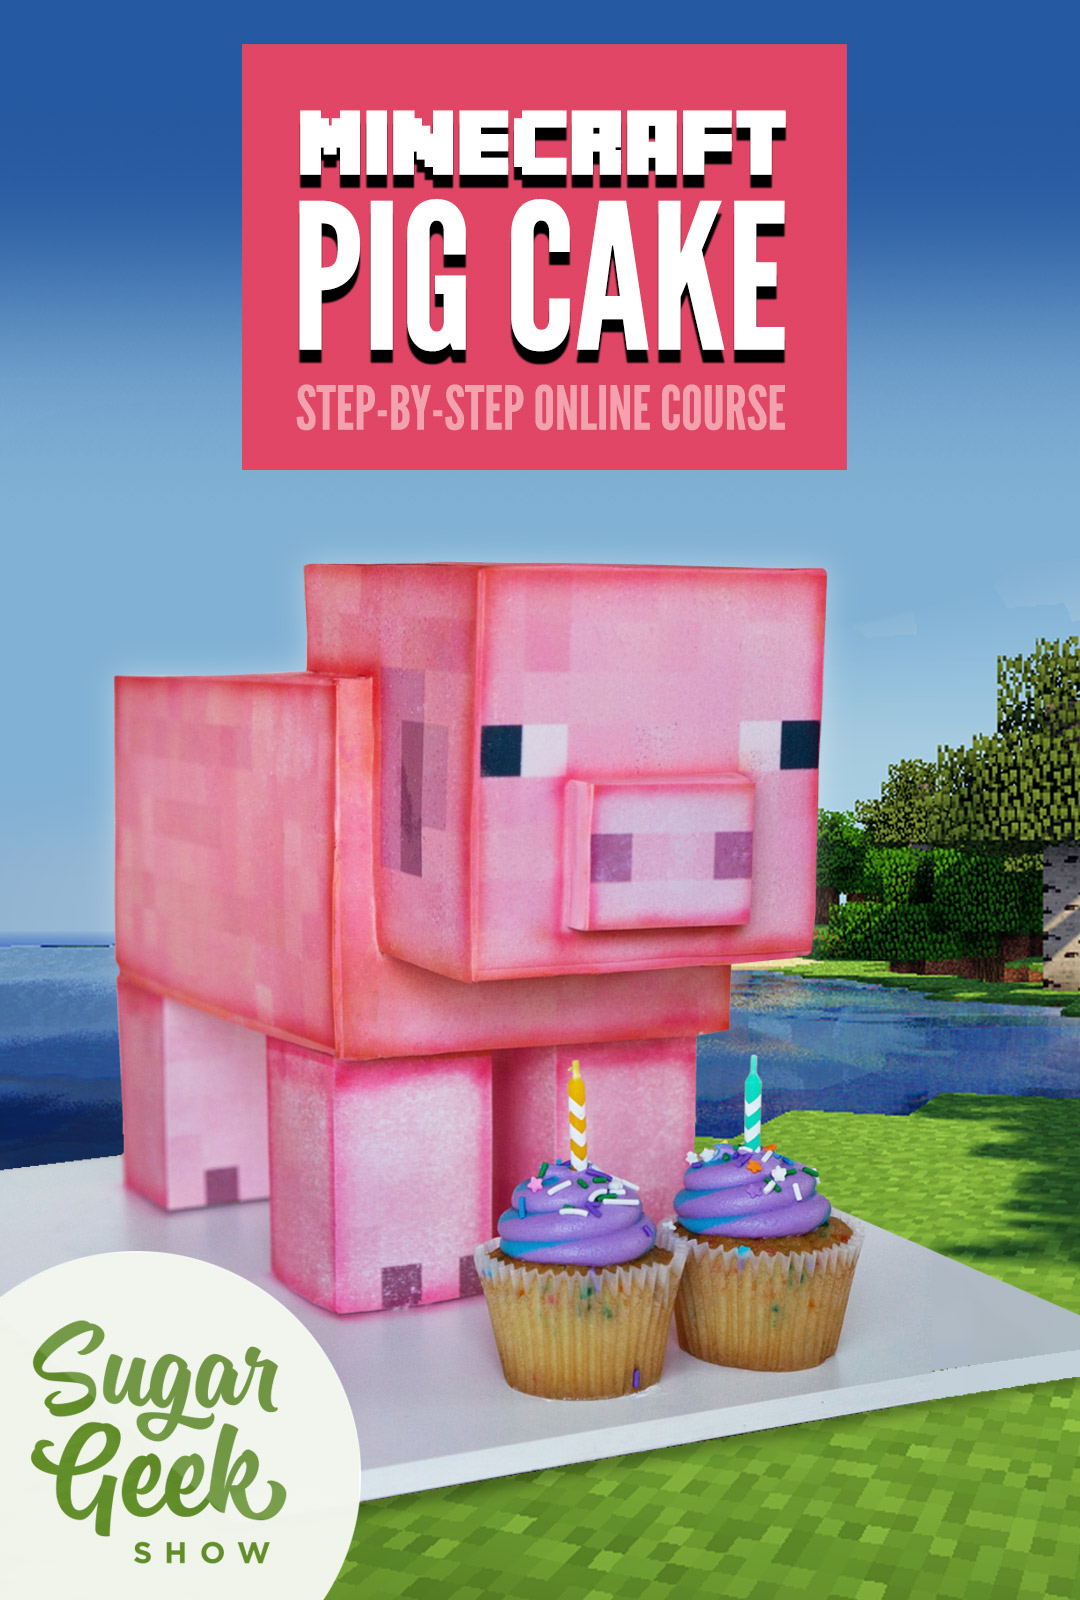 Cake sculpted to look like a pig from Minecraft the video game